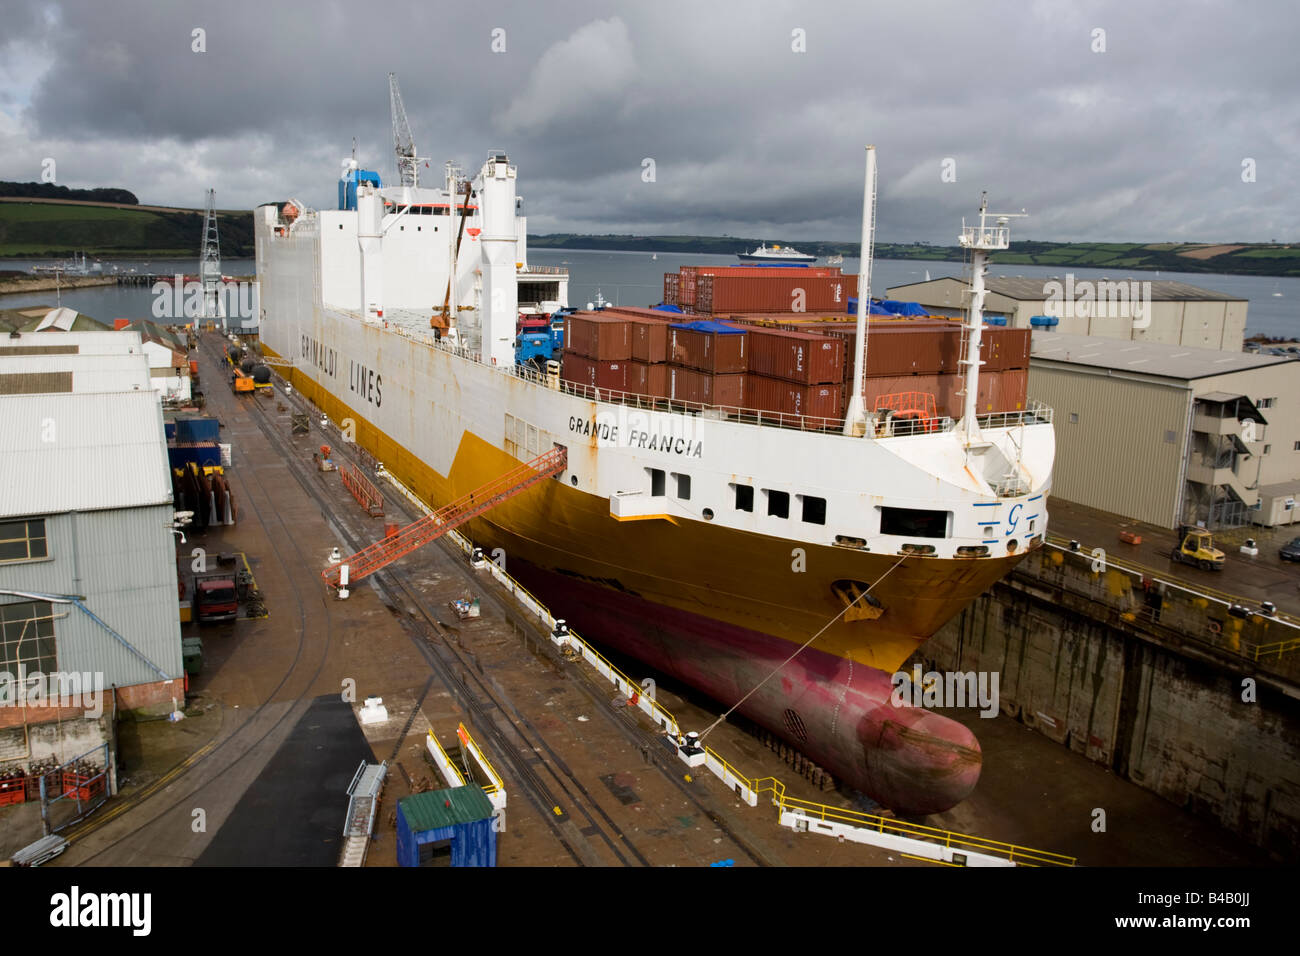 Grande Francia container cargo ship in dry dock Grimaldi Lines Falmouth Docks Cornwall UK - Stock Image